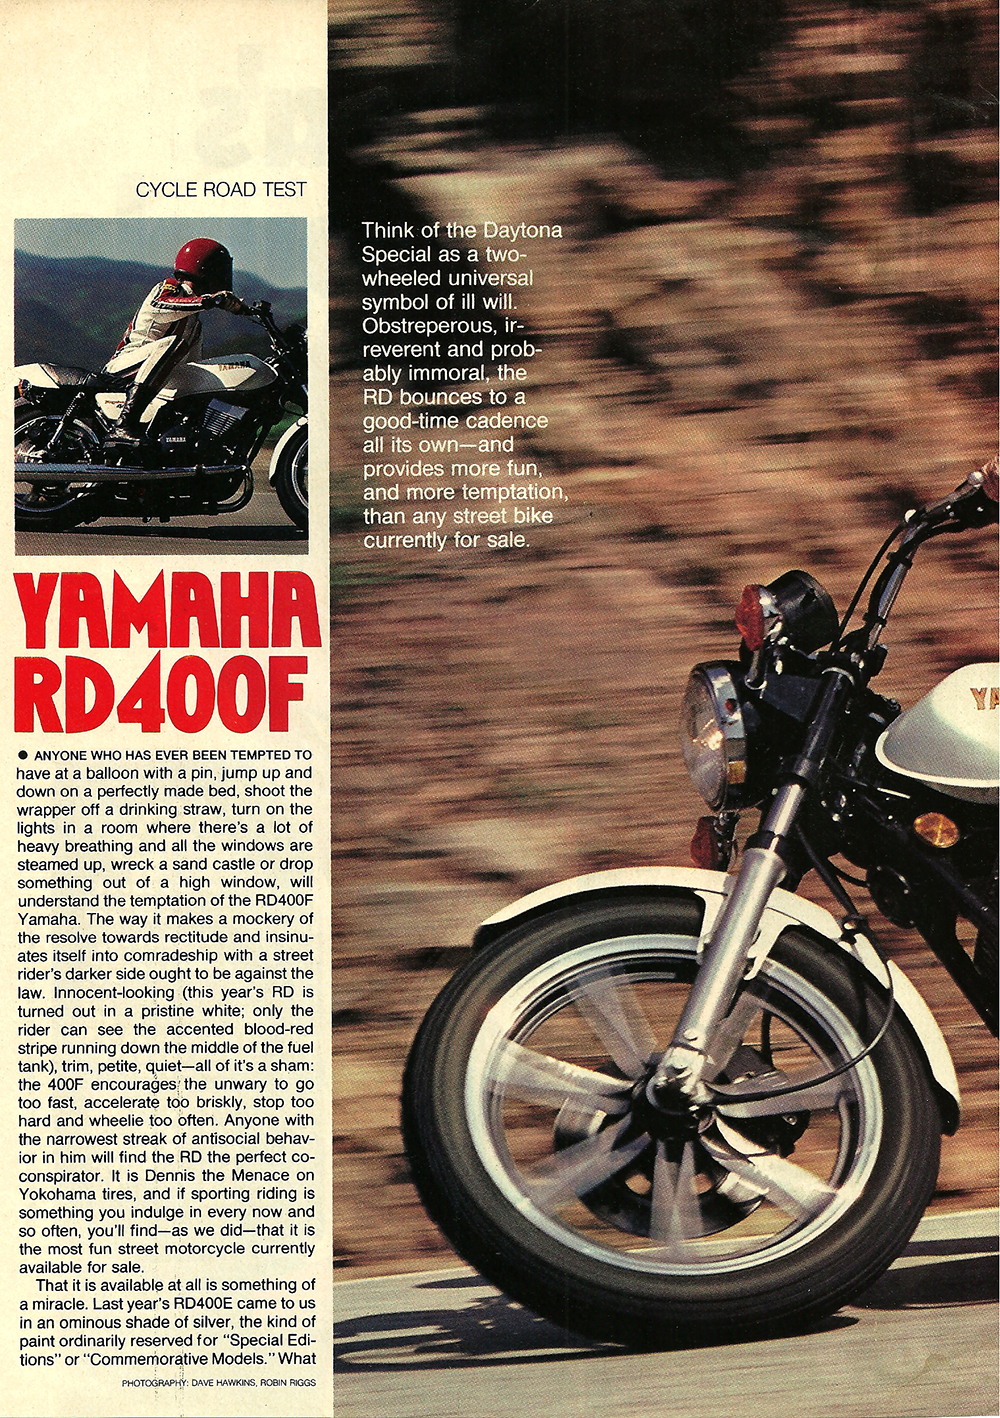 1979 Yamaha RD400F road test 01.jpg